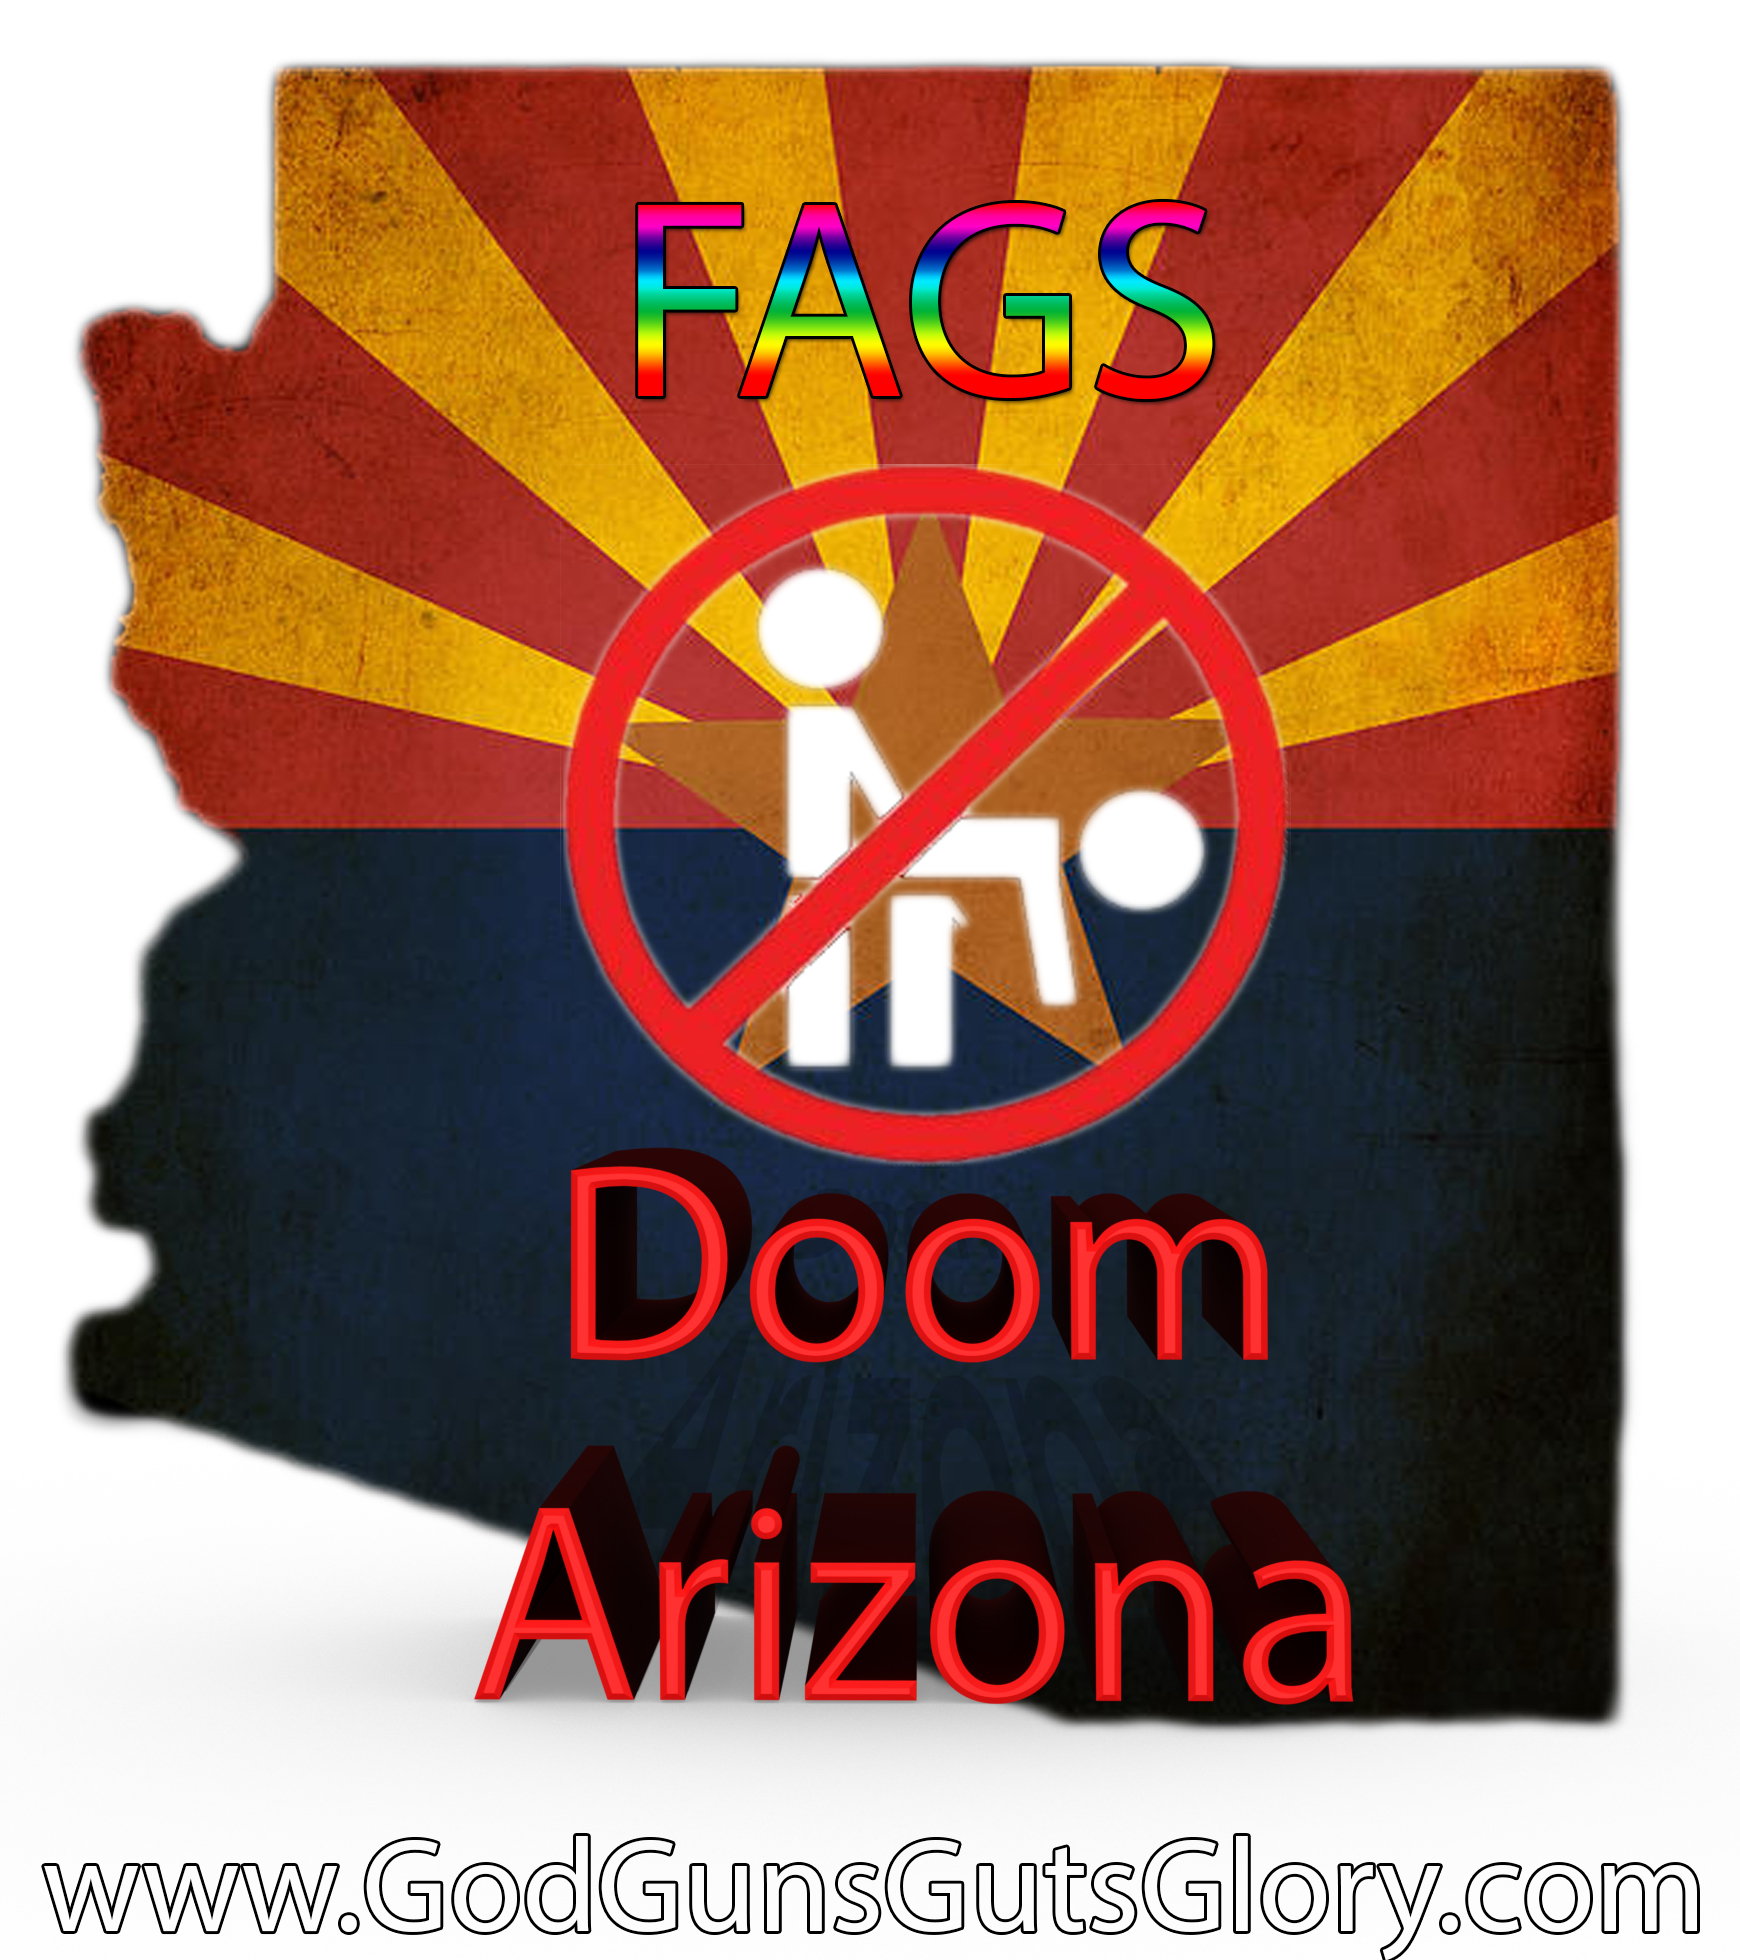 Fags Doom Arizona!